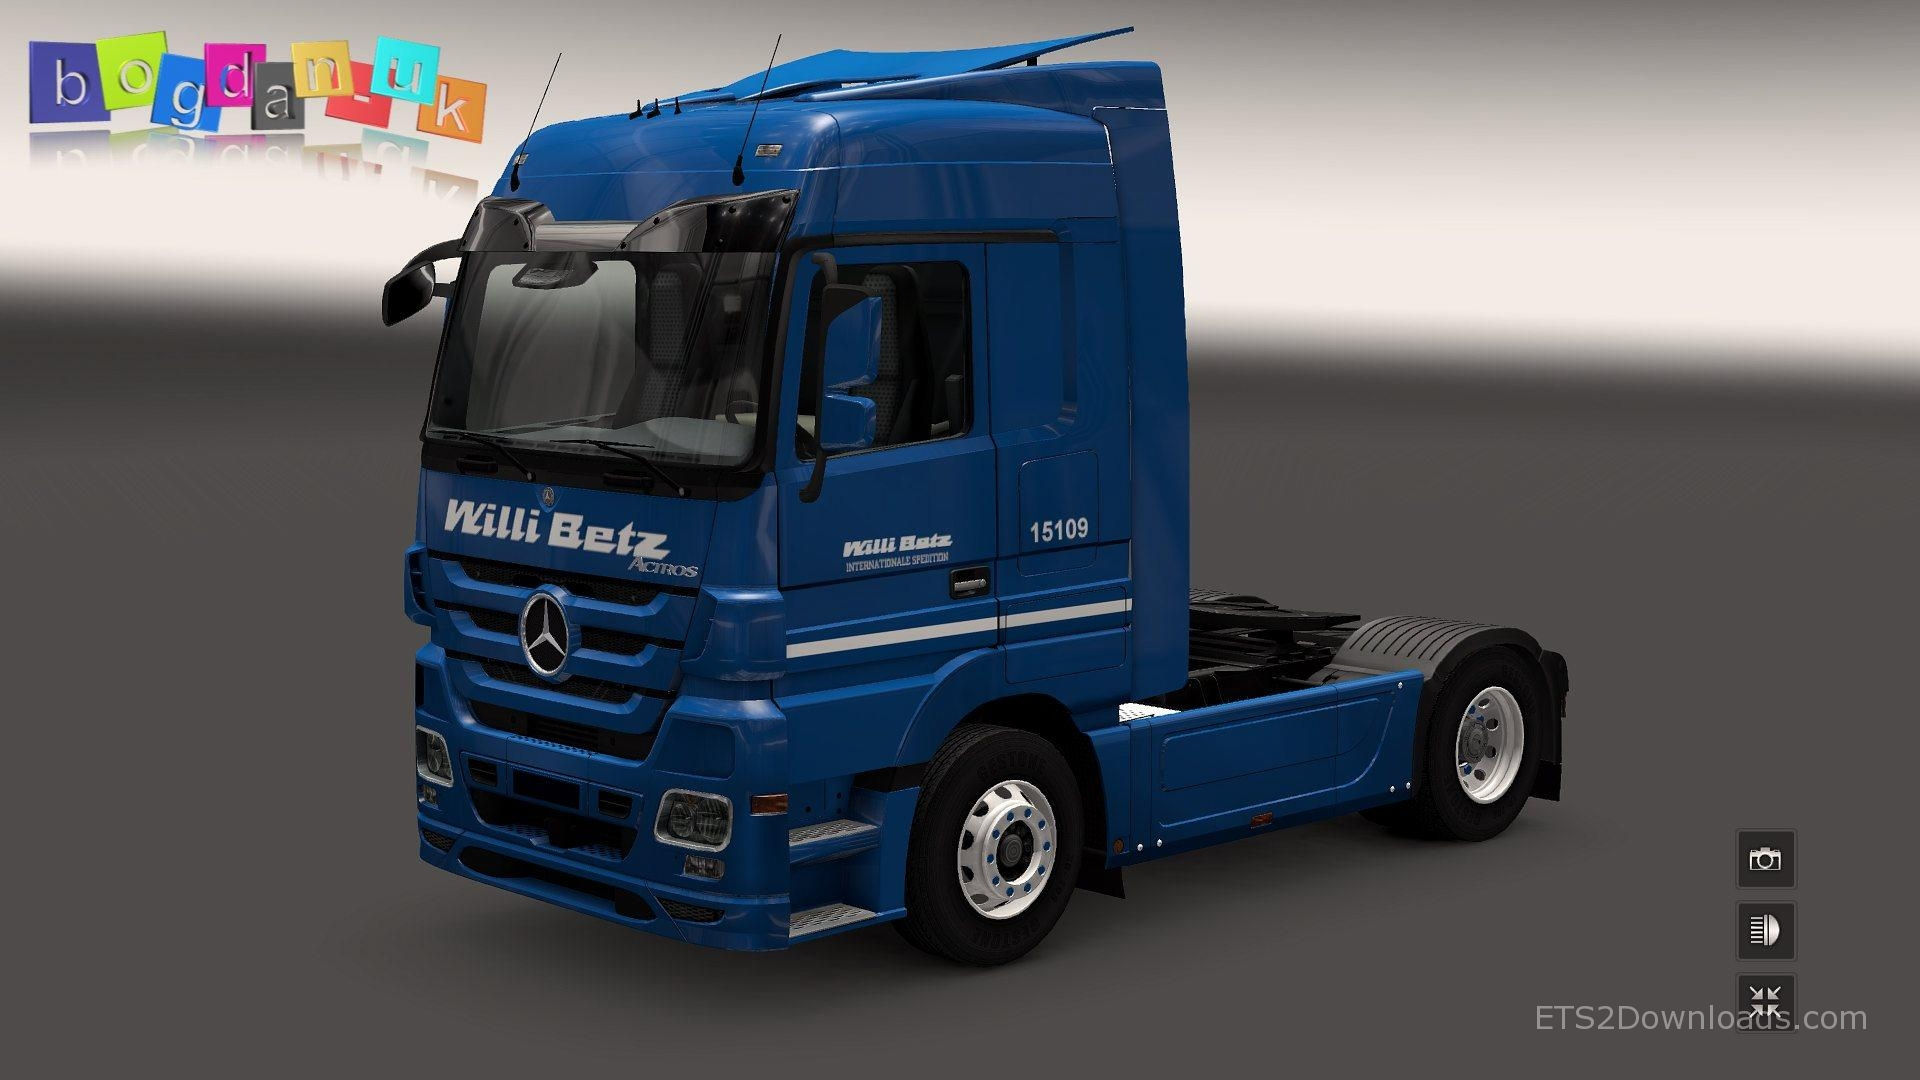 willi-betz-skin-pack-for-mercedes-benz-3